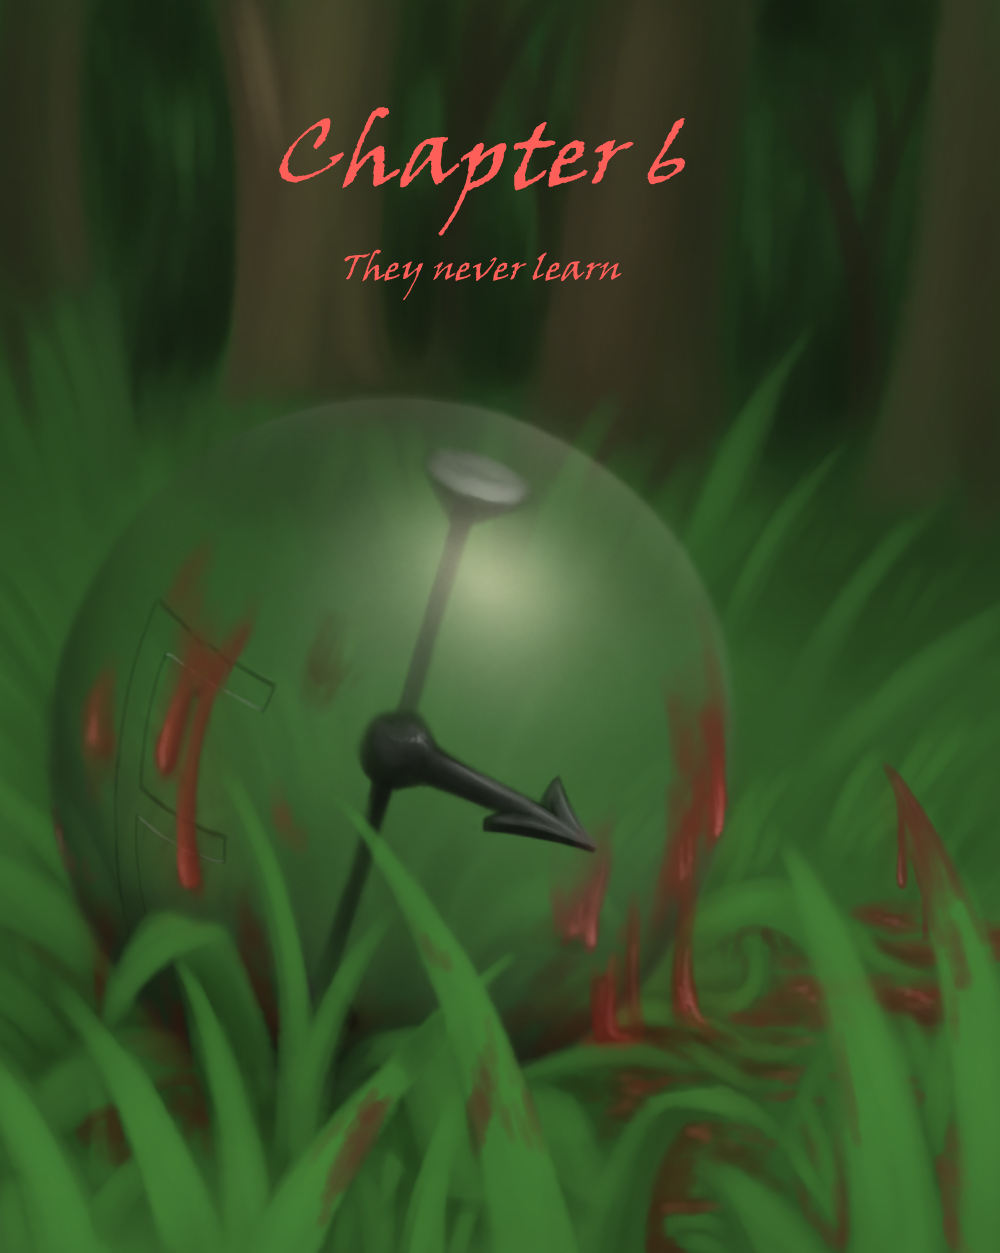 Chapter 6 - They never learn